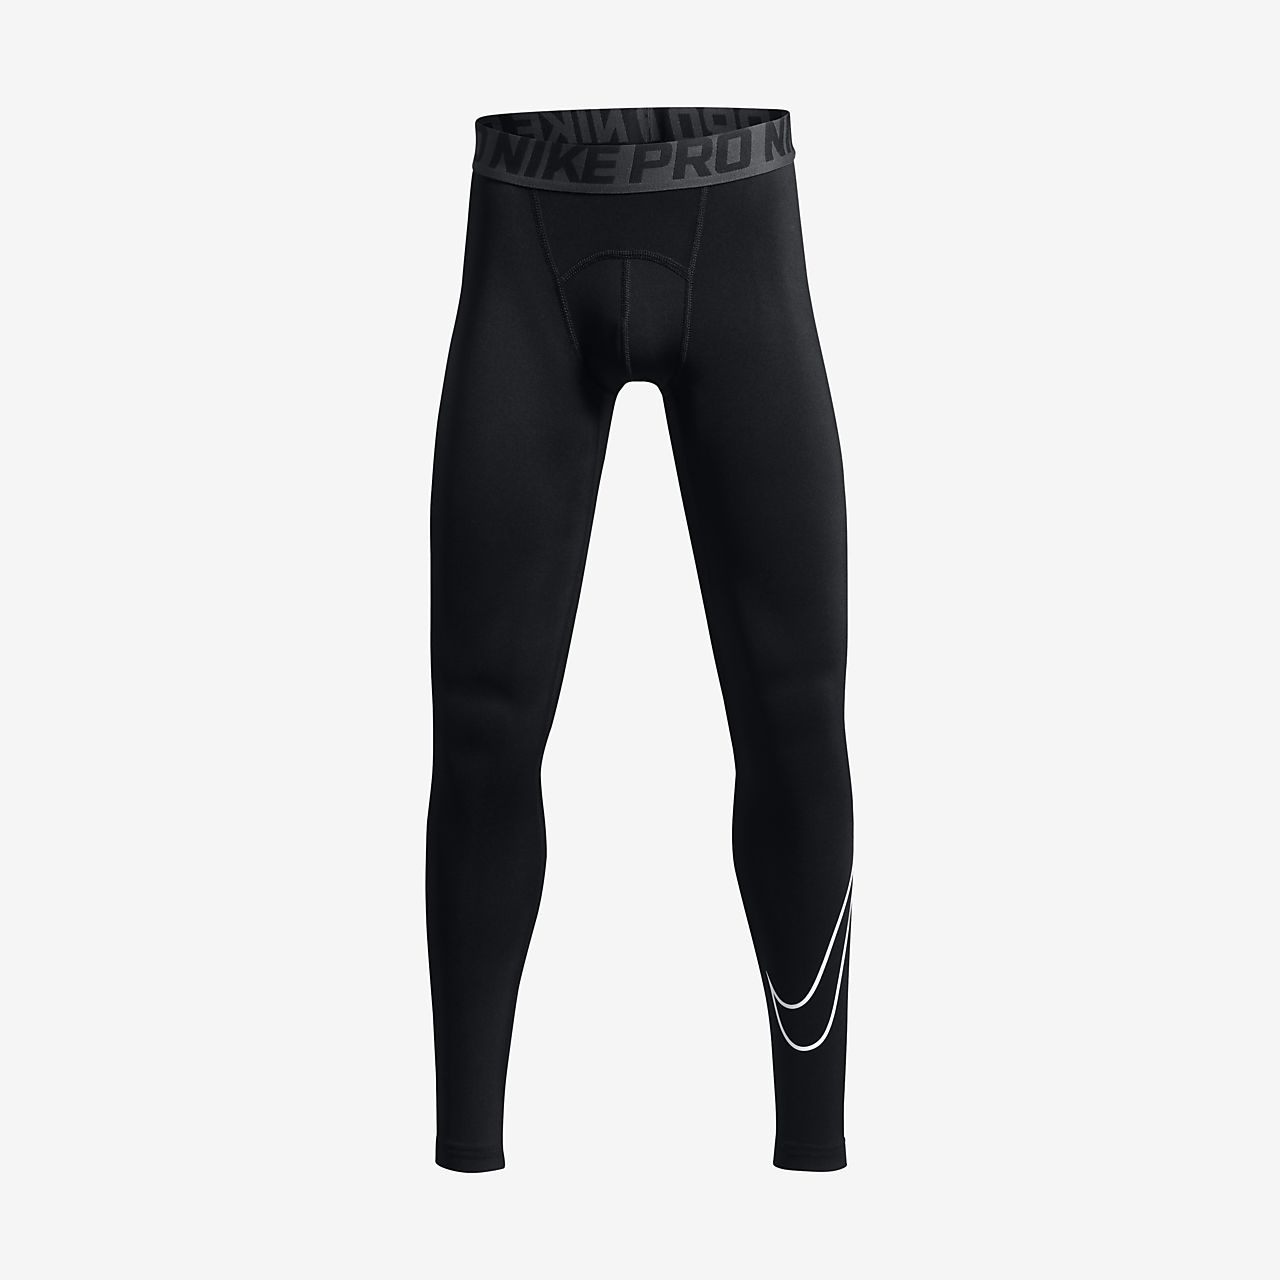 Nike Pro Big Kids' Training Tights Black/Anthracite/White